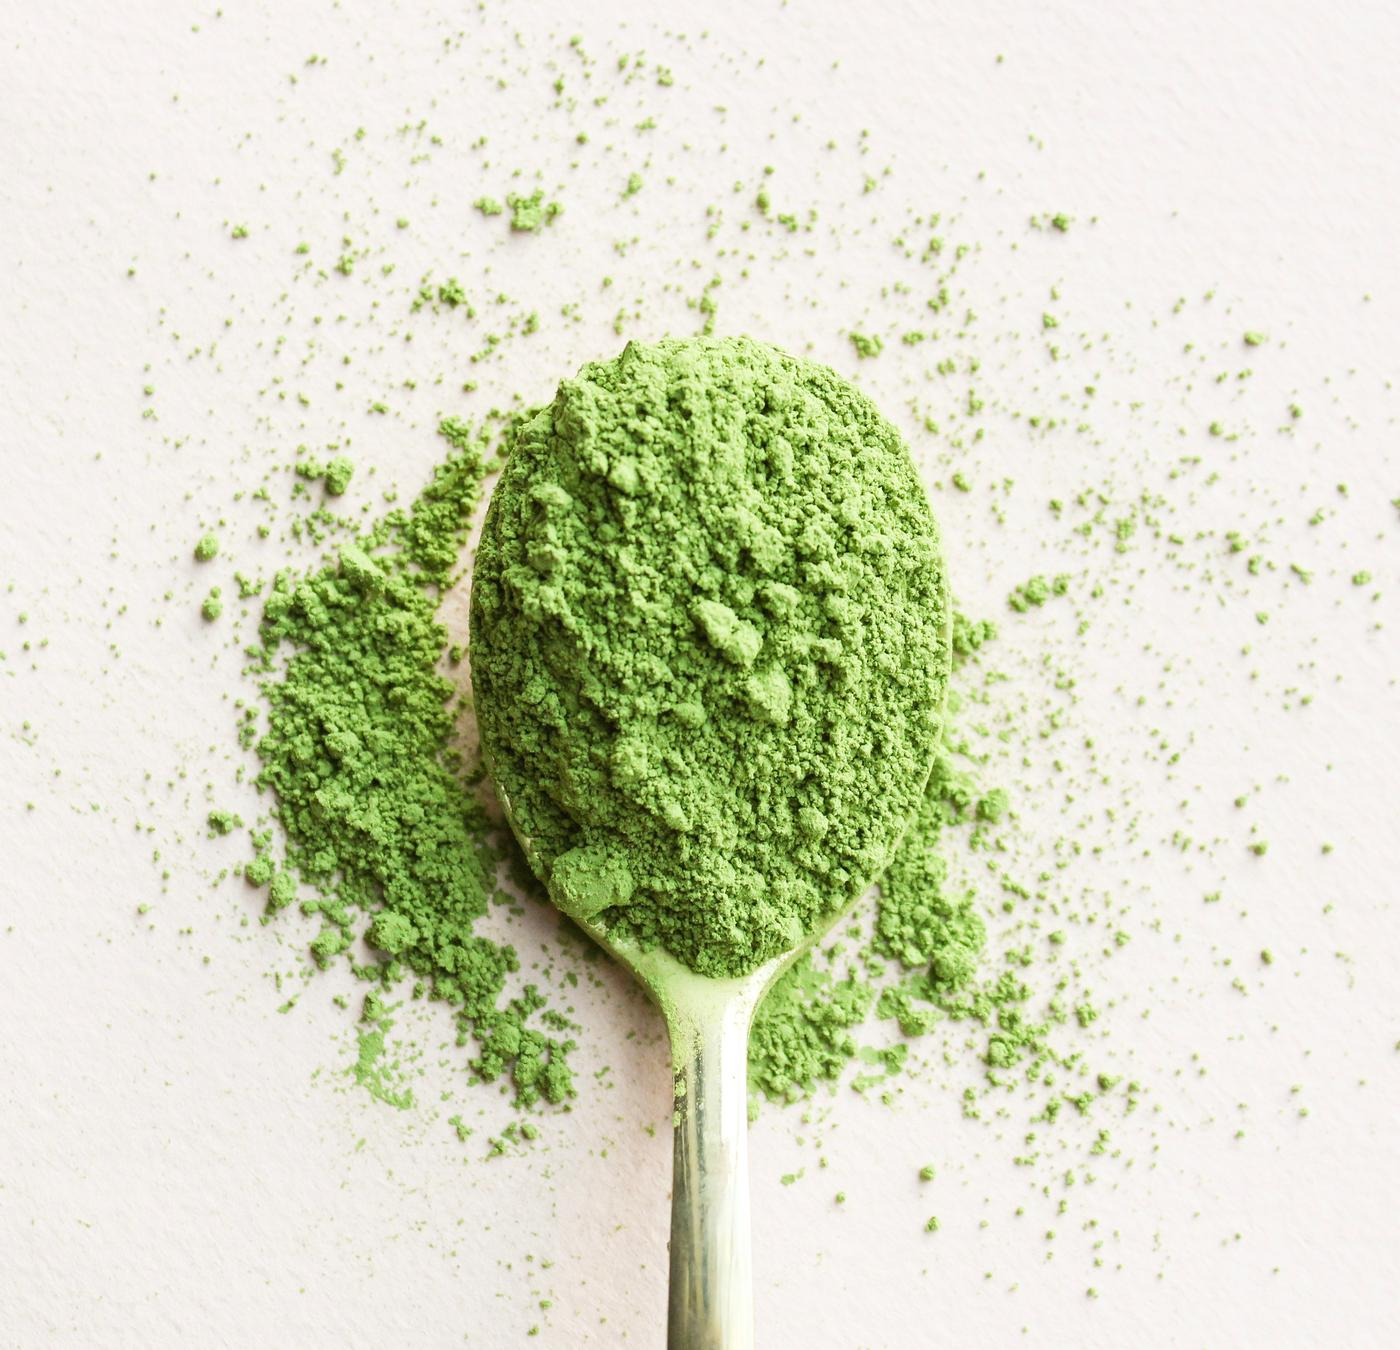 Powdered green tea and wooden spoon